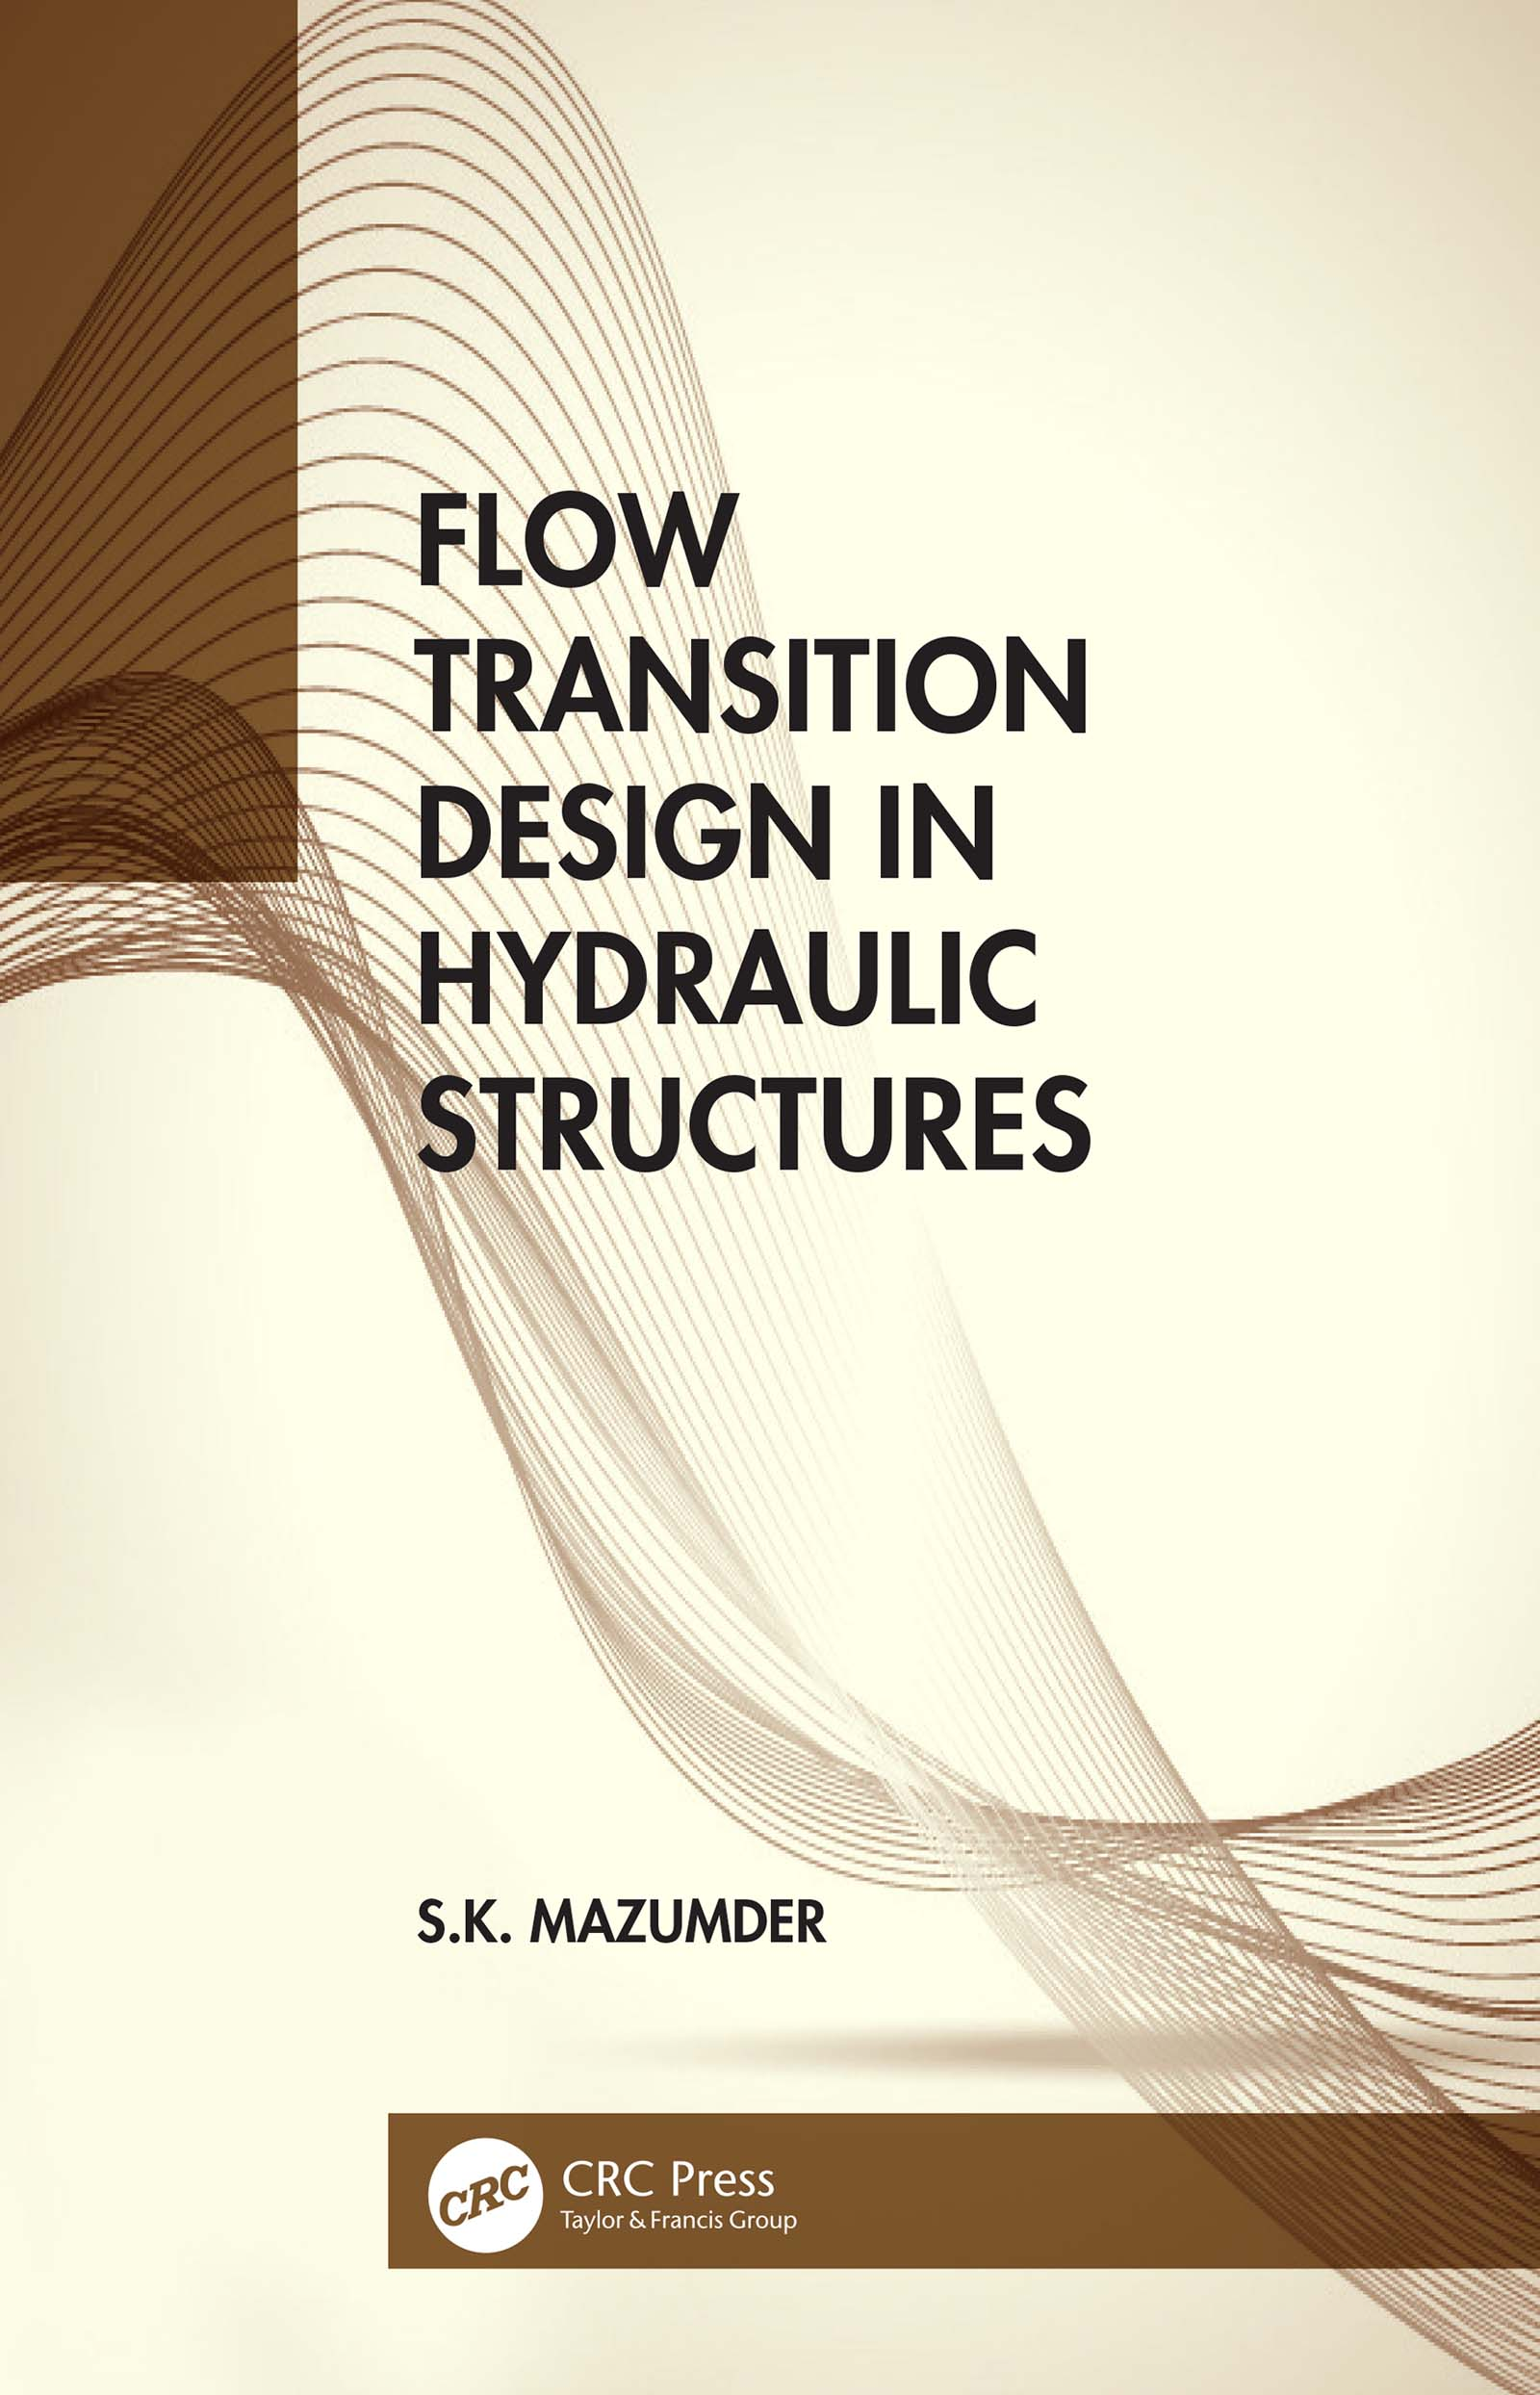 Flow Transition Design in Hydraulic Structures book cover